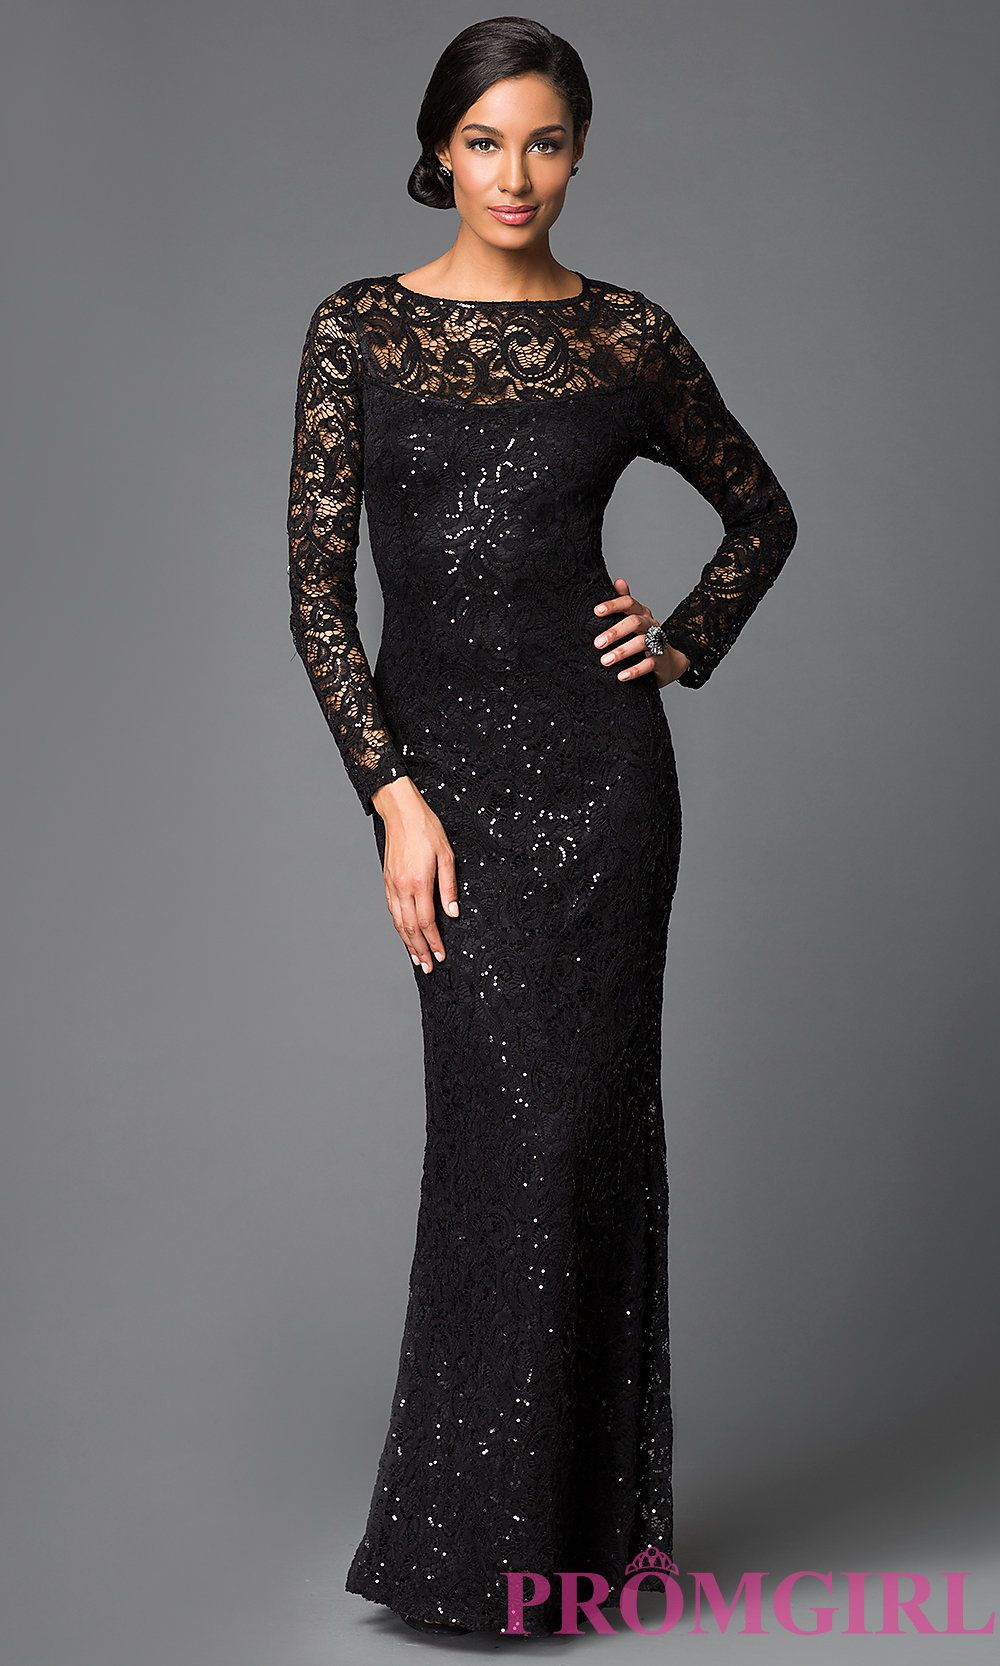 22c6f692 Image of long sleeve floor length sequin embellished lace dress Front Image